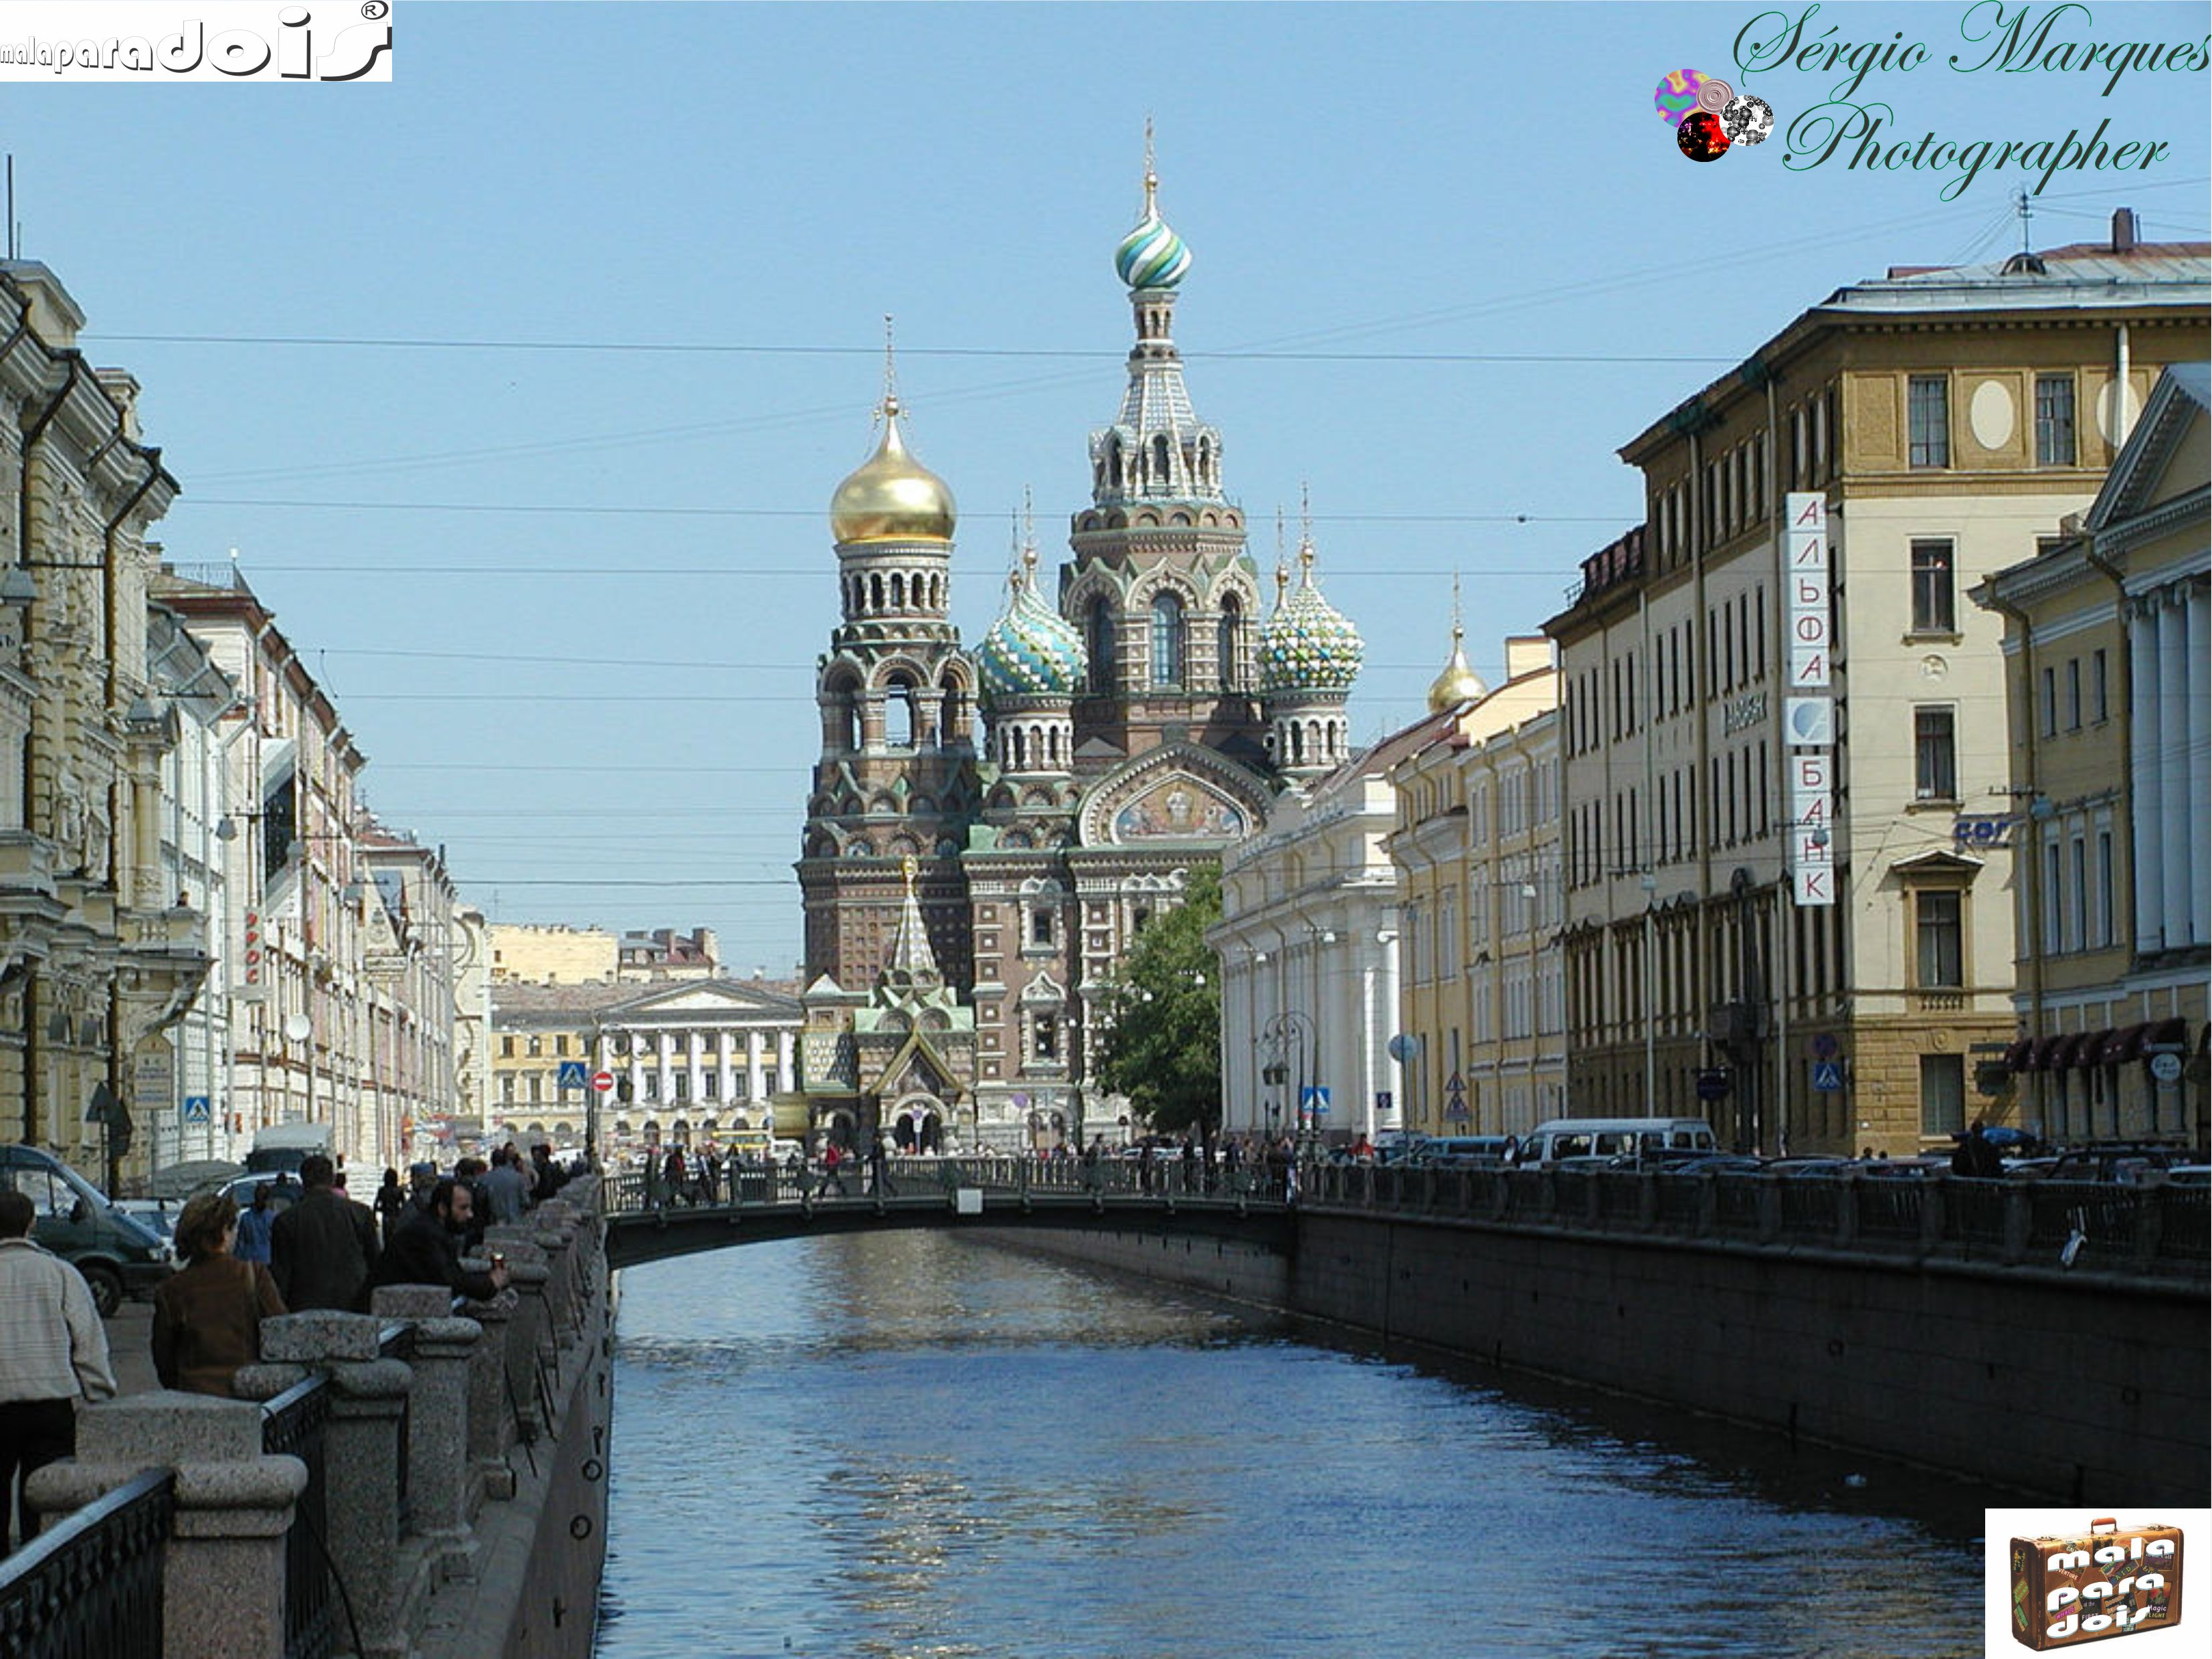 St. Petersburgo